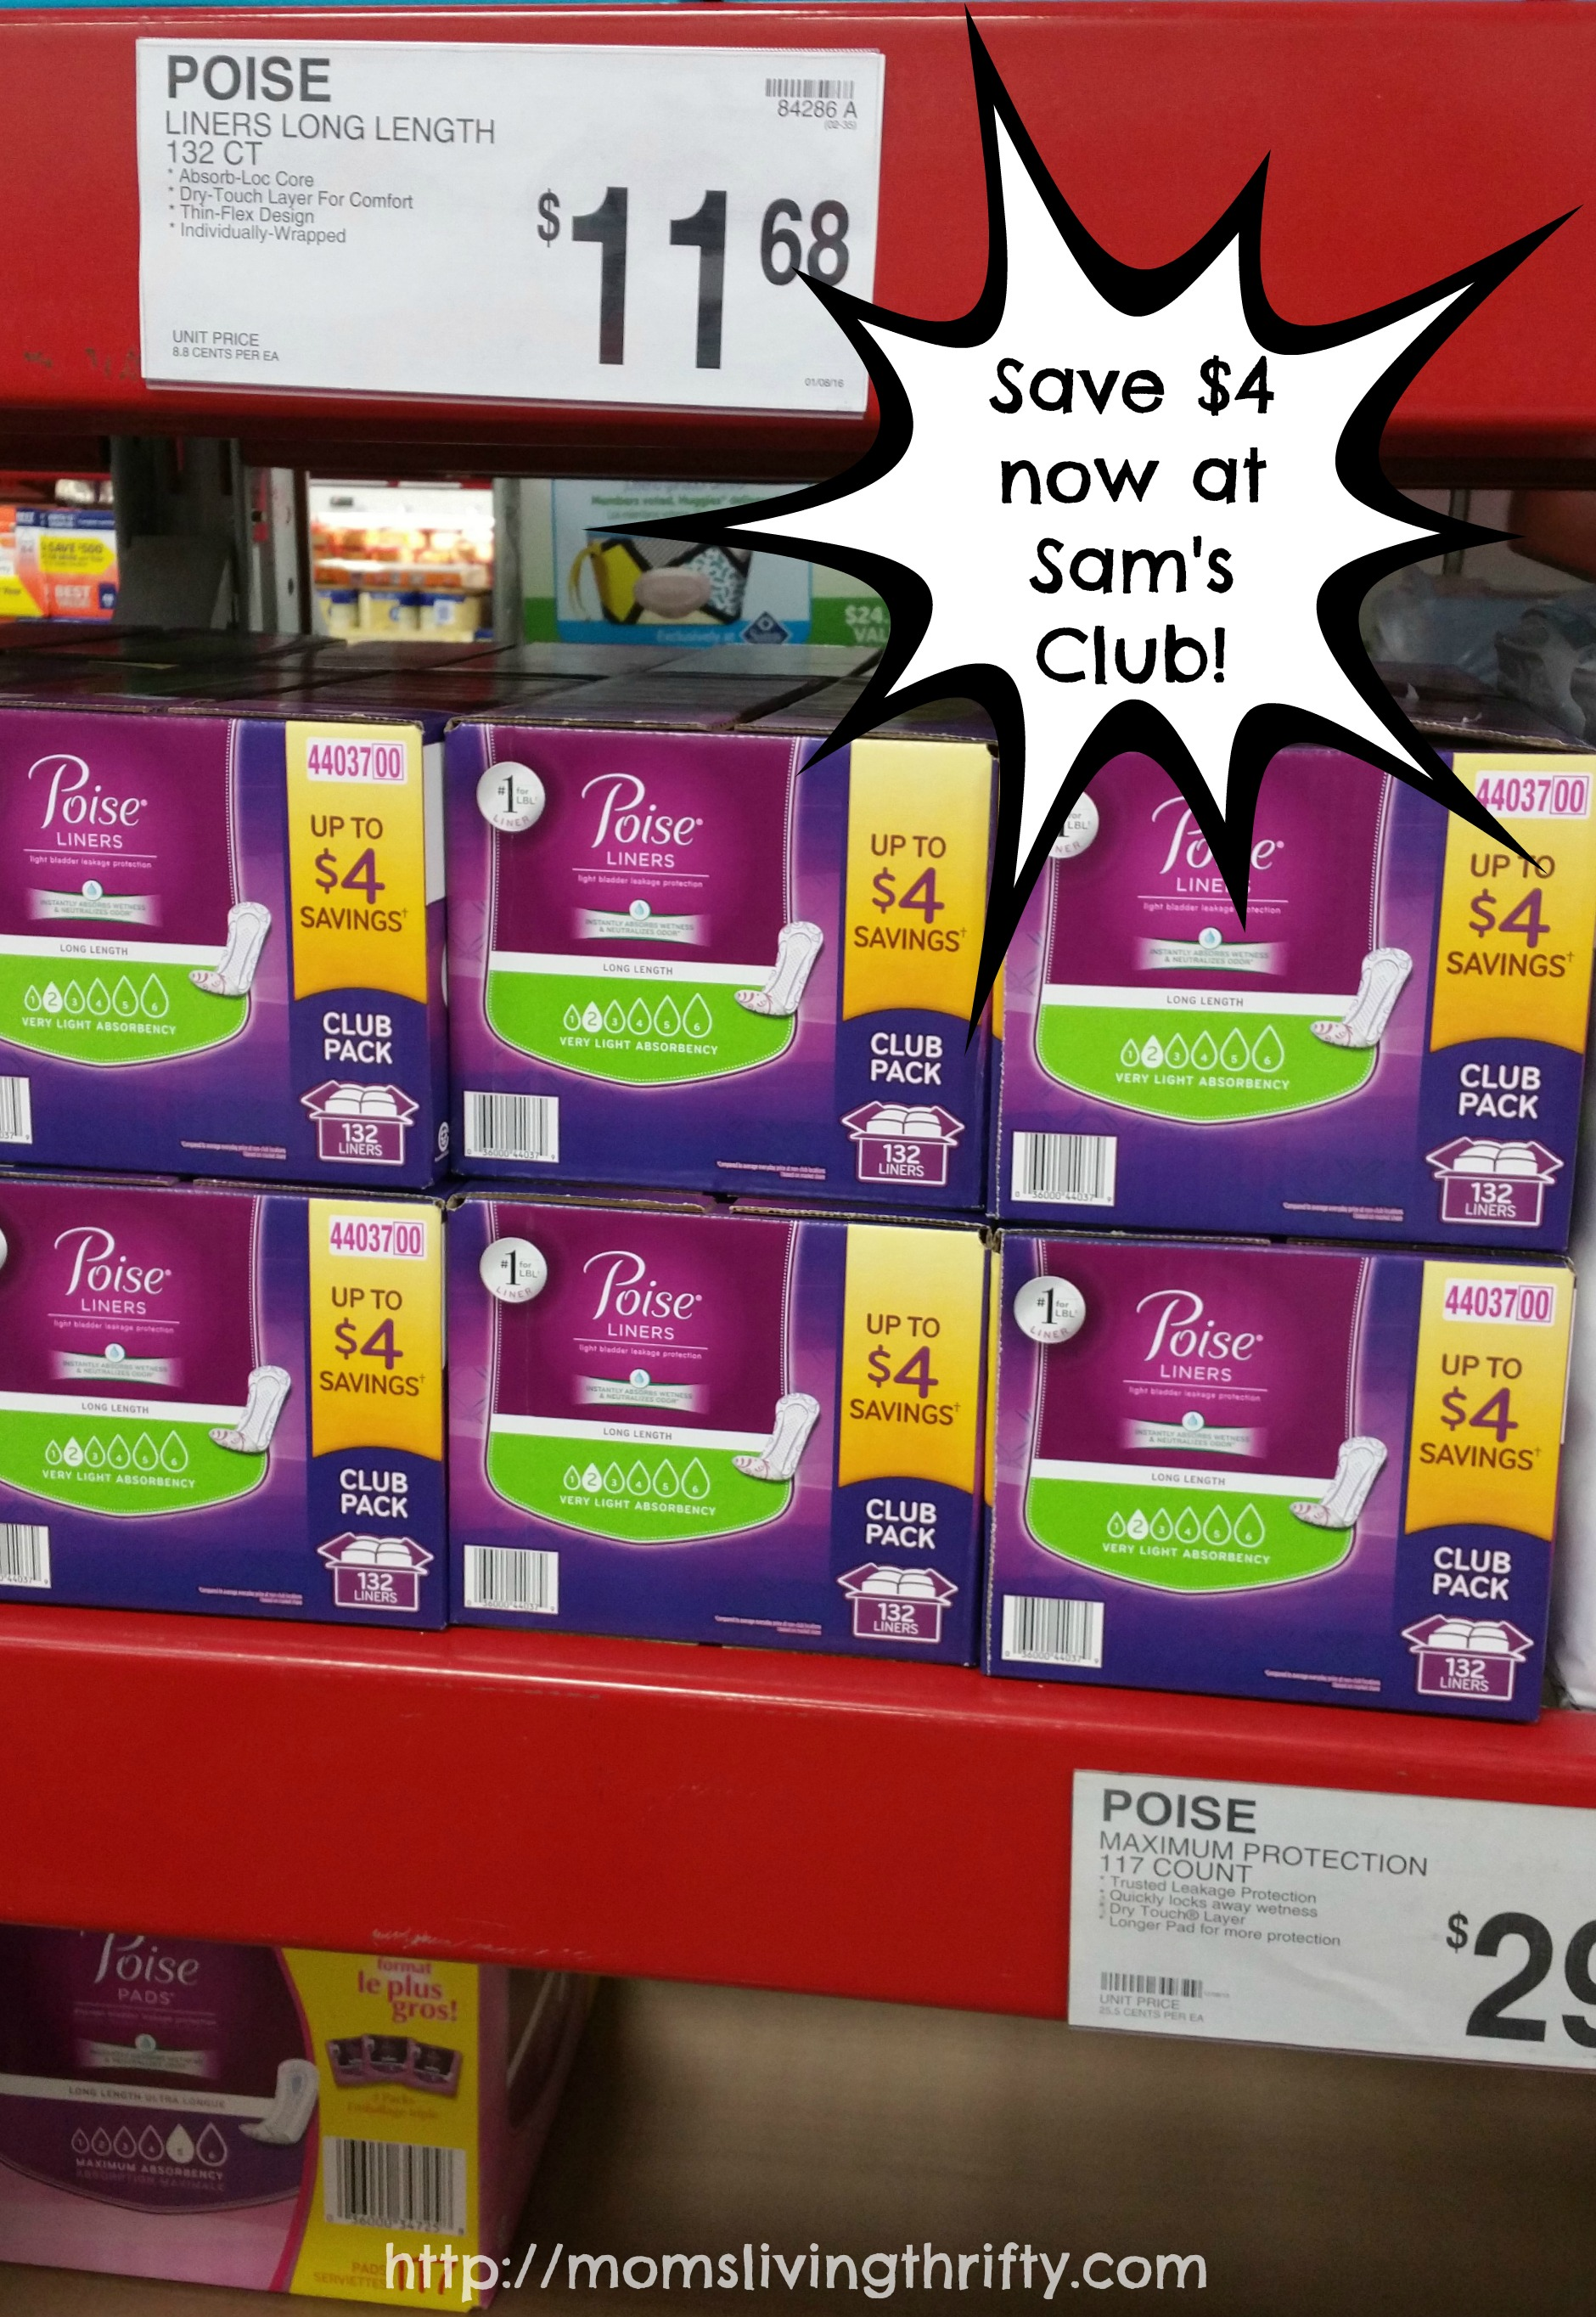 Get YOUR life back! Pick up Poise Liners now at Sam's Club.